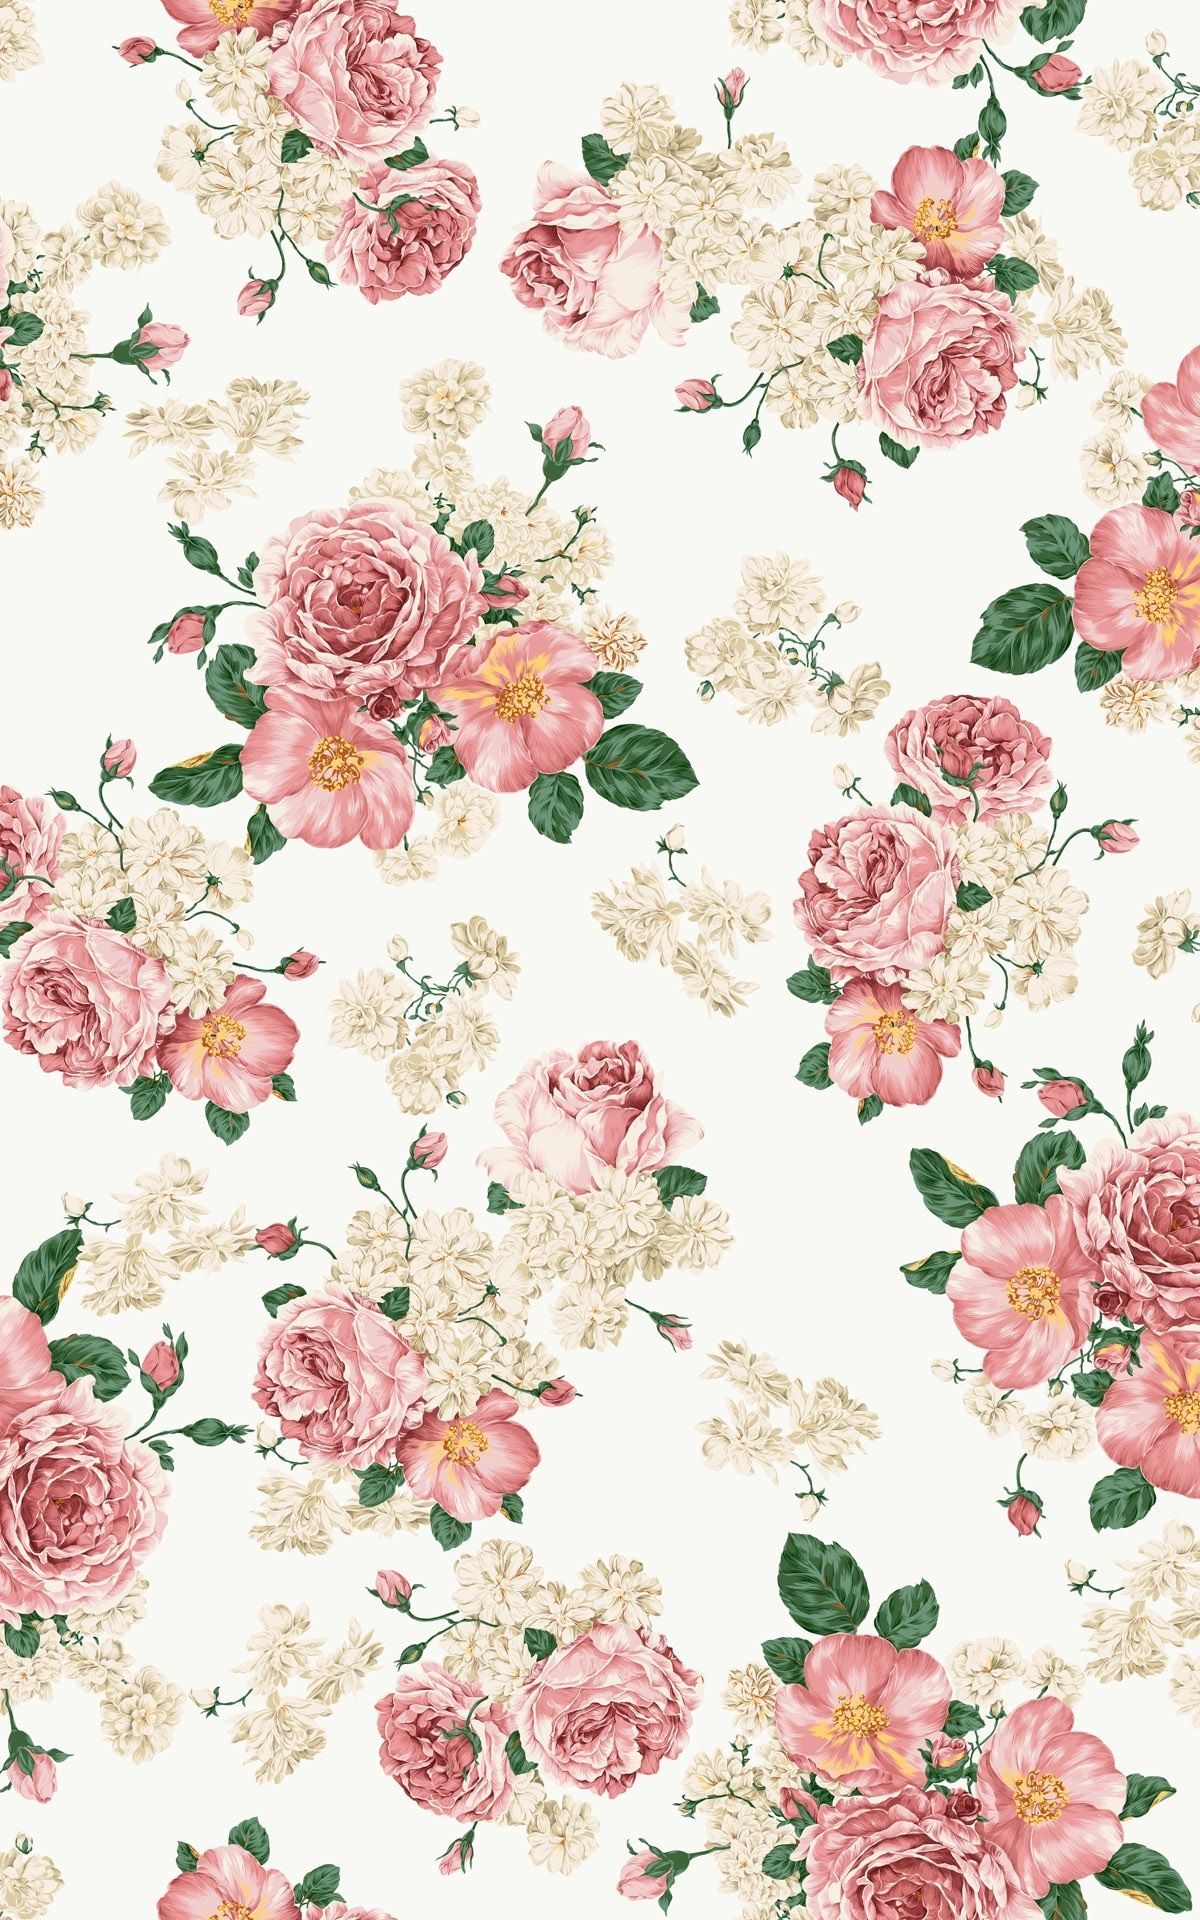 Tumblr Backgrounds Flowers Images Photos